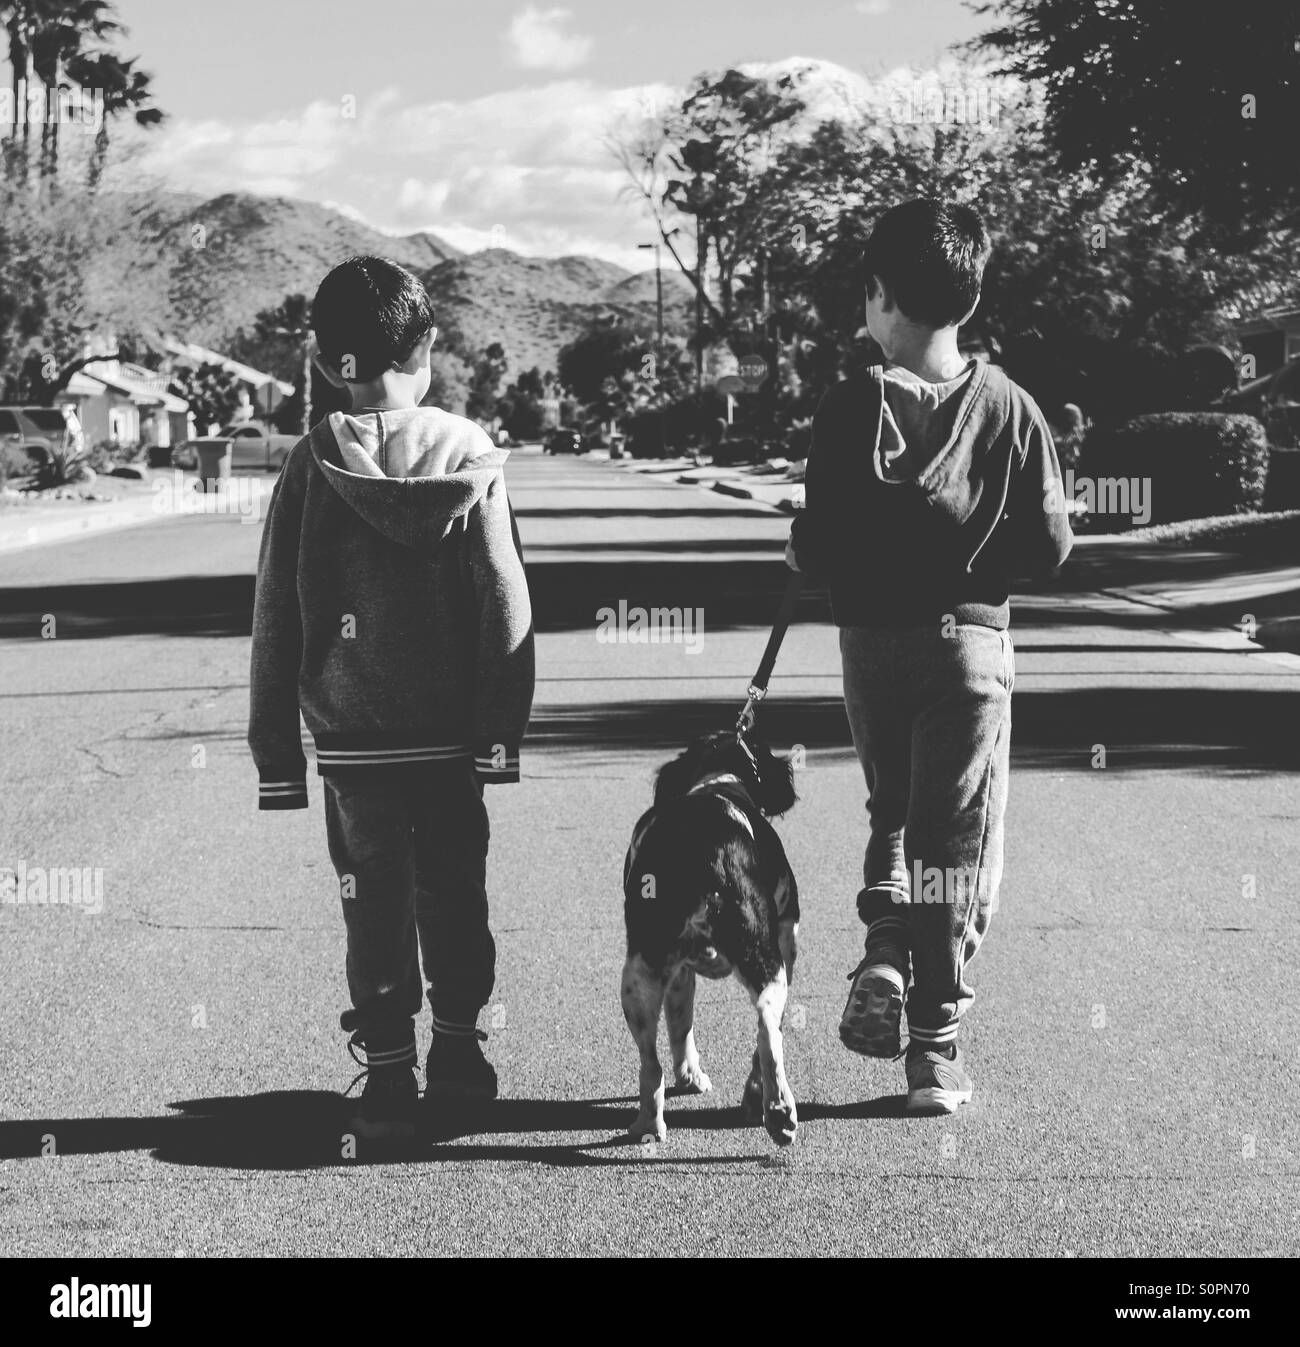 Brothers taking their elderly dog for a walk in the neighborhood - Stock Image